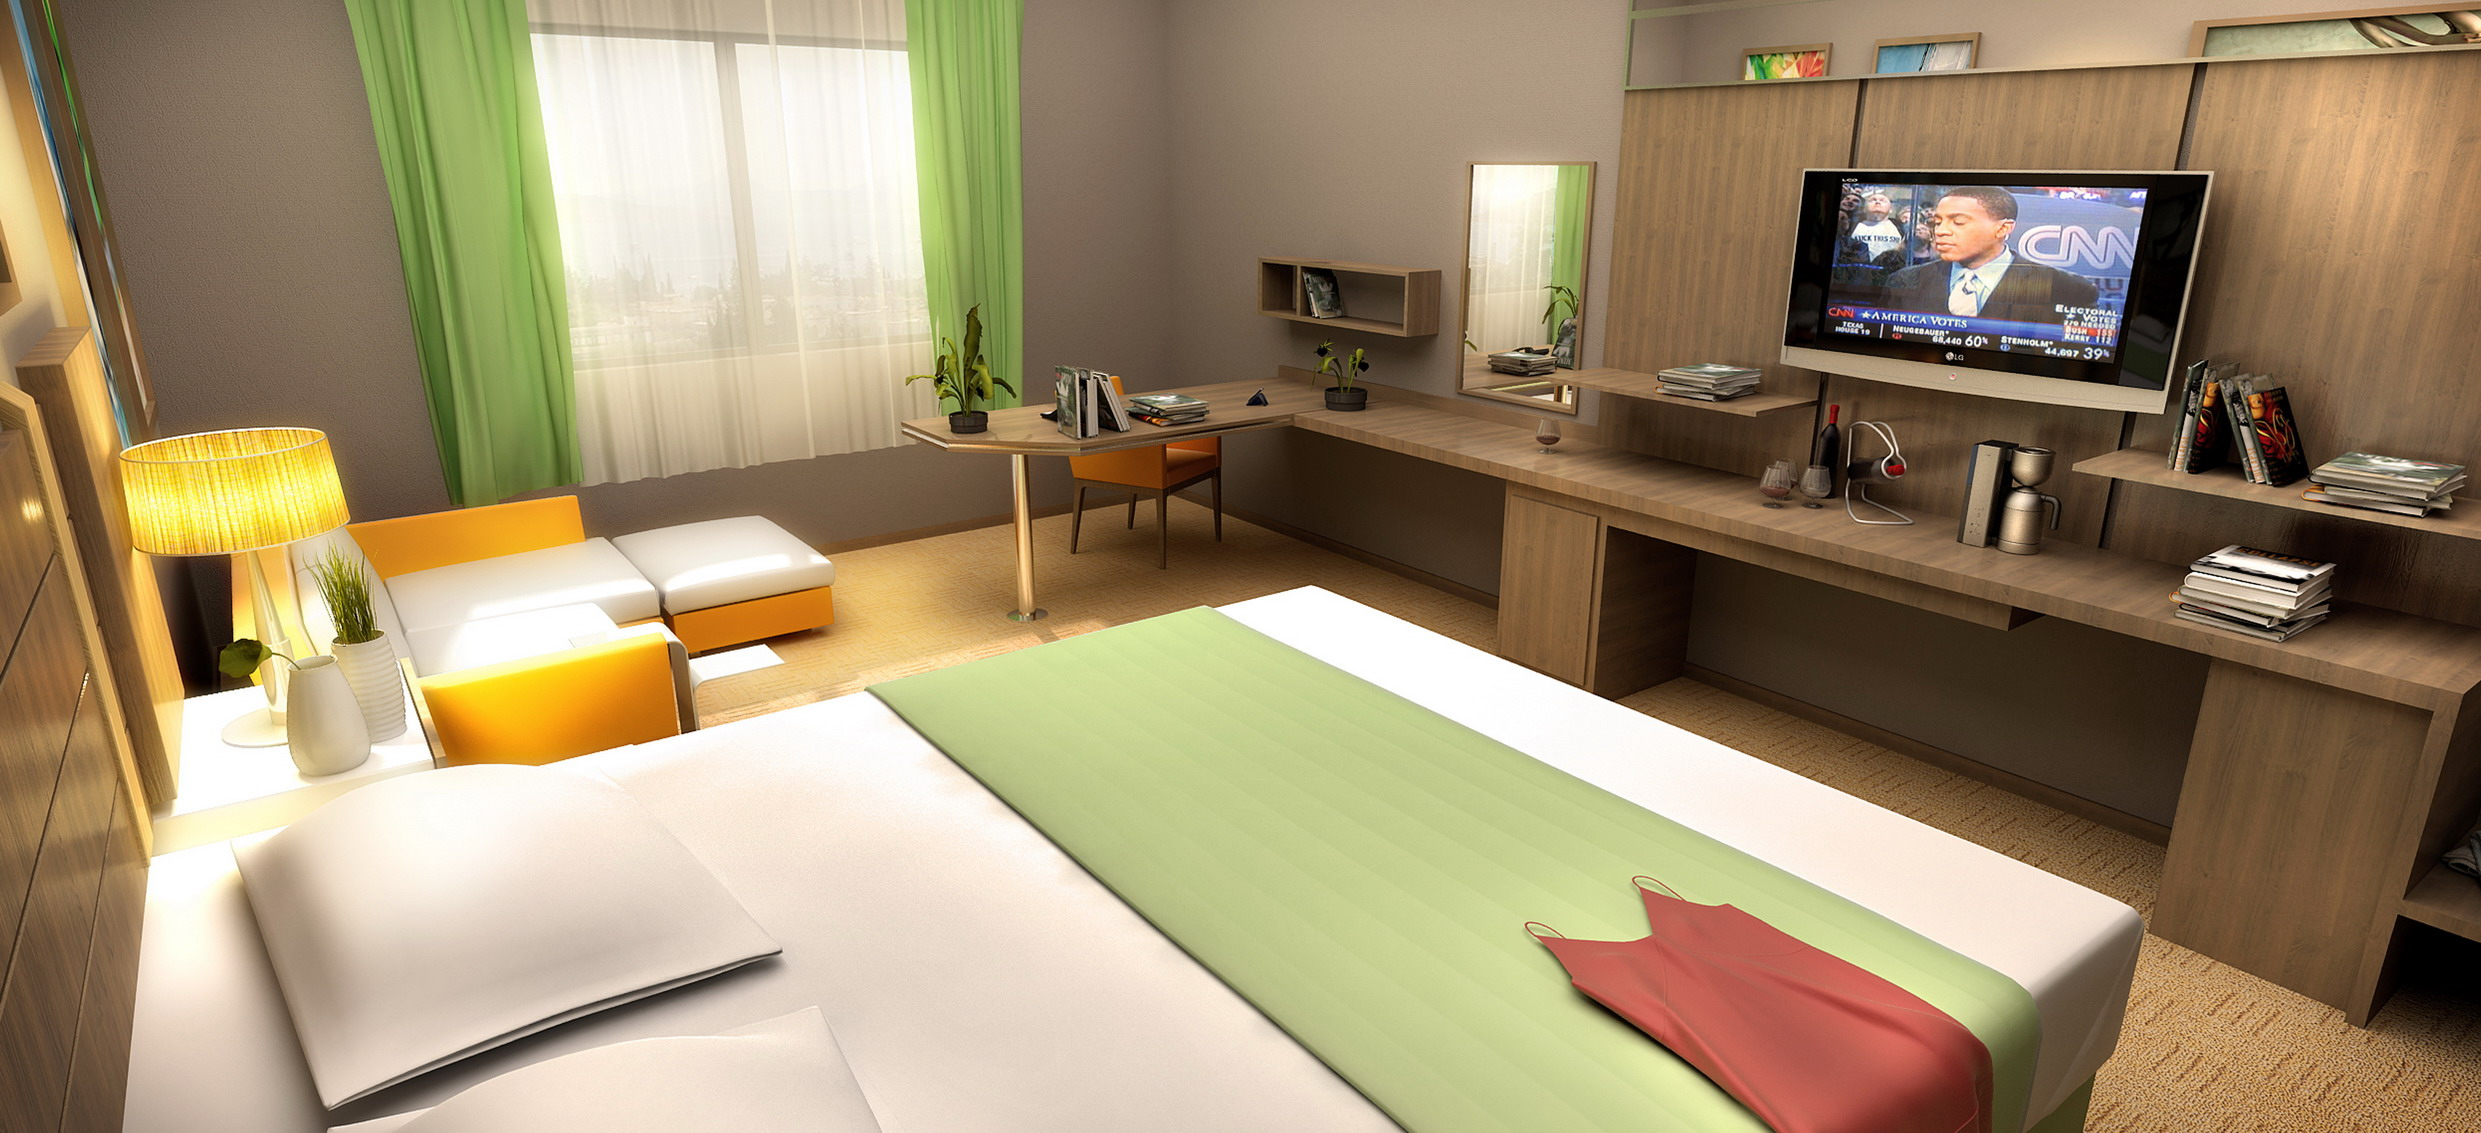 3D hotel room desk rendering